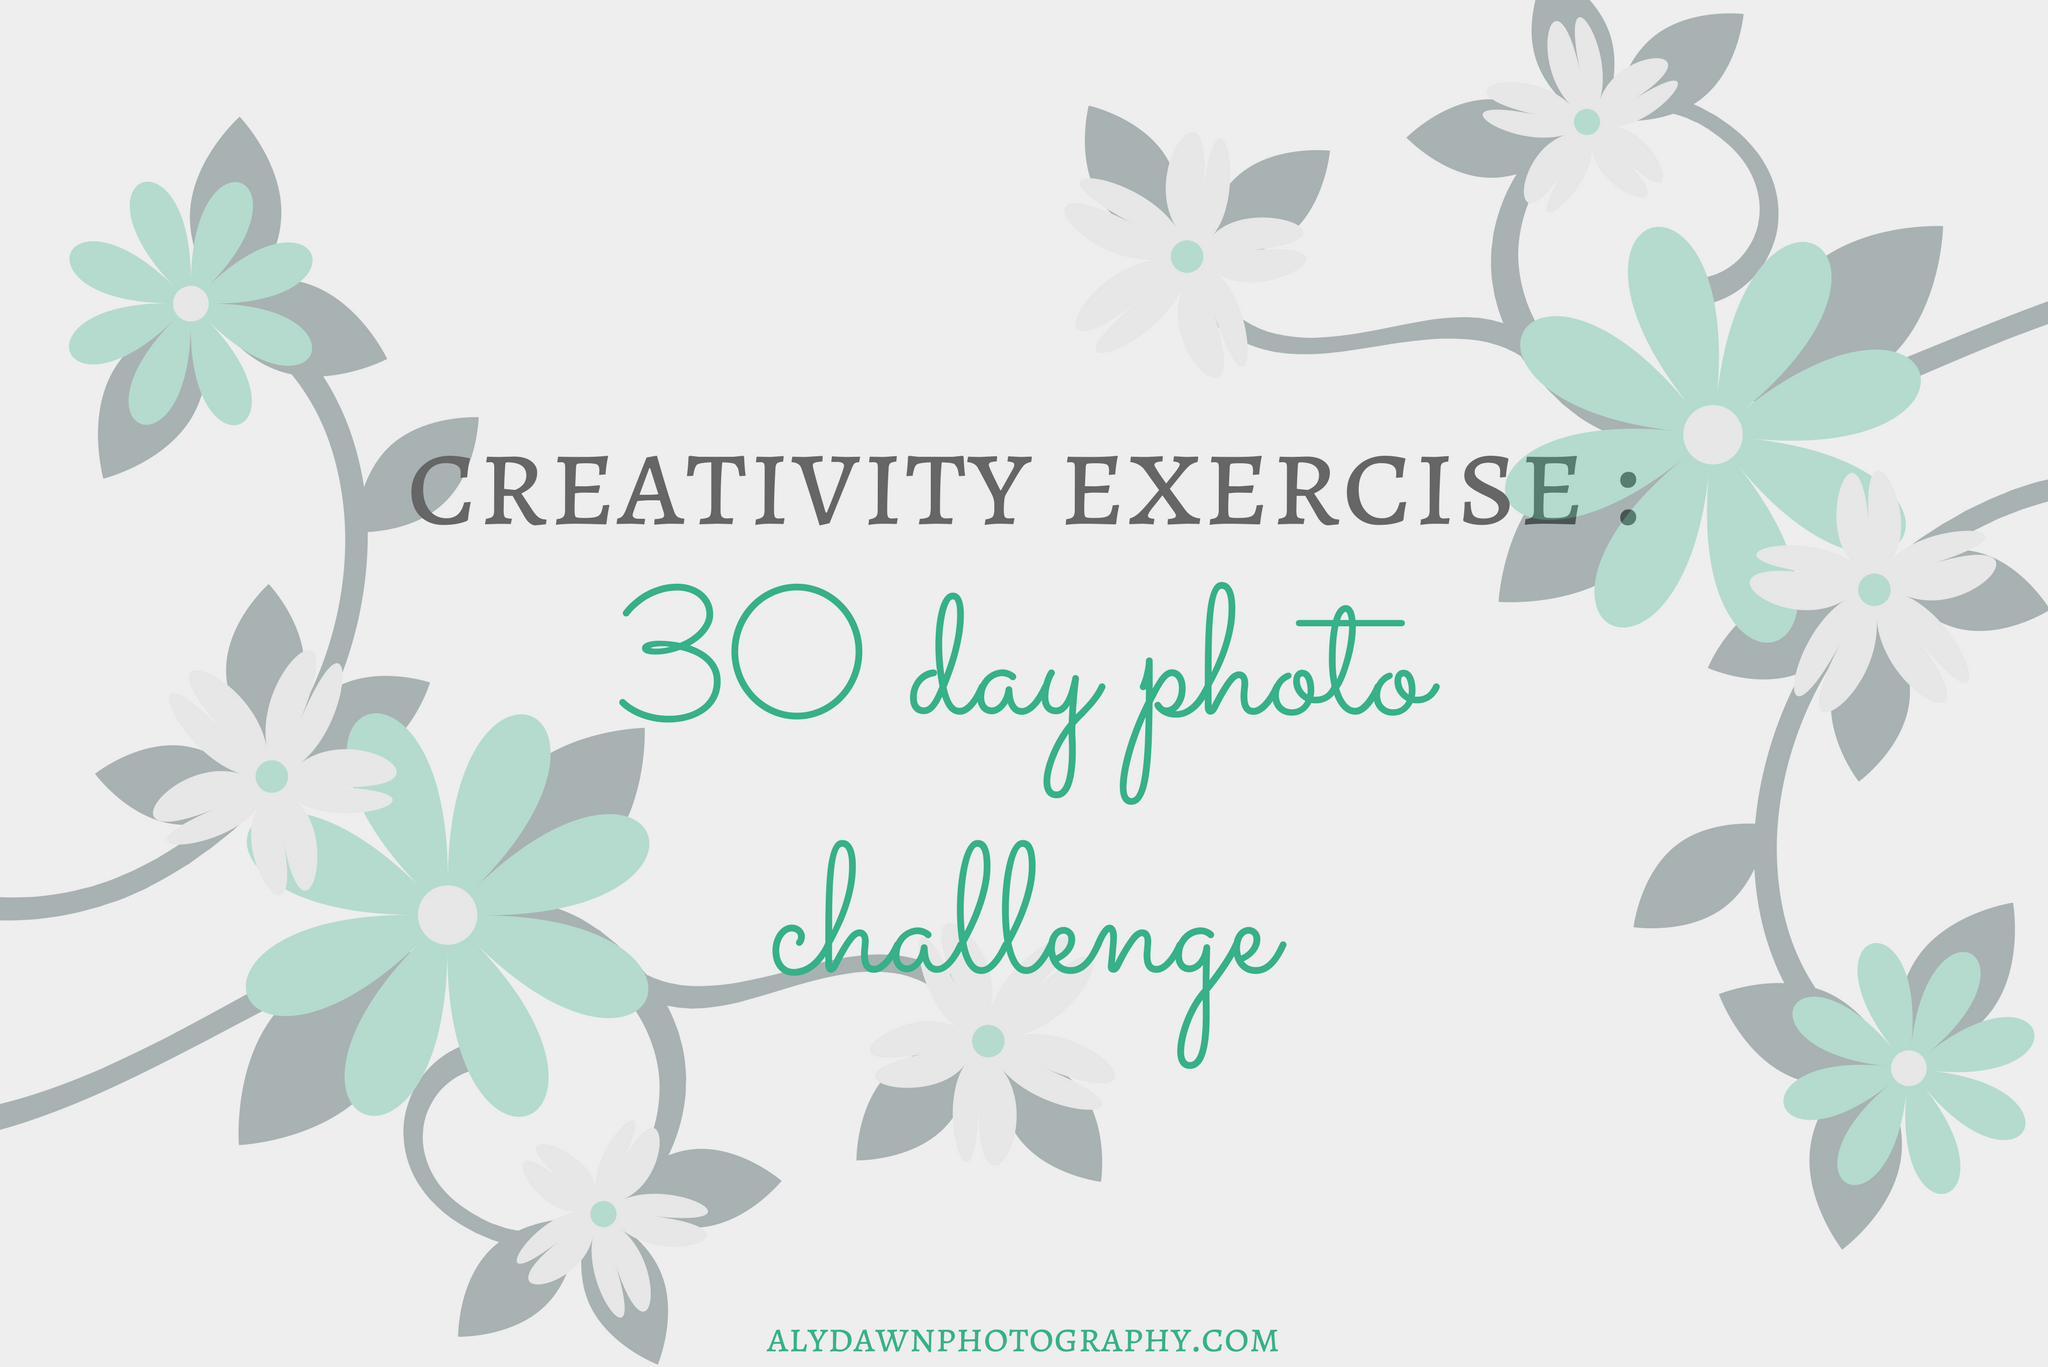 Creativity Exercise : 30 Day Photo Challenge